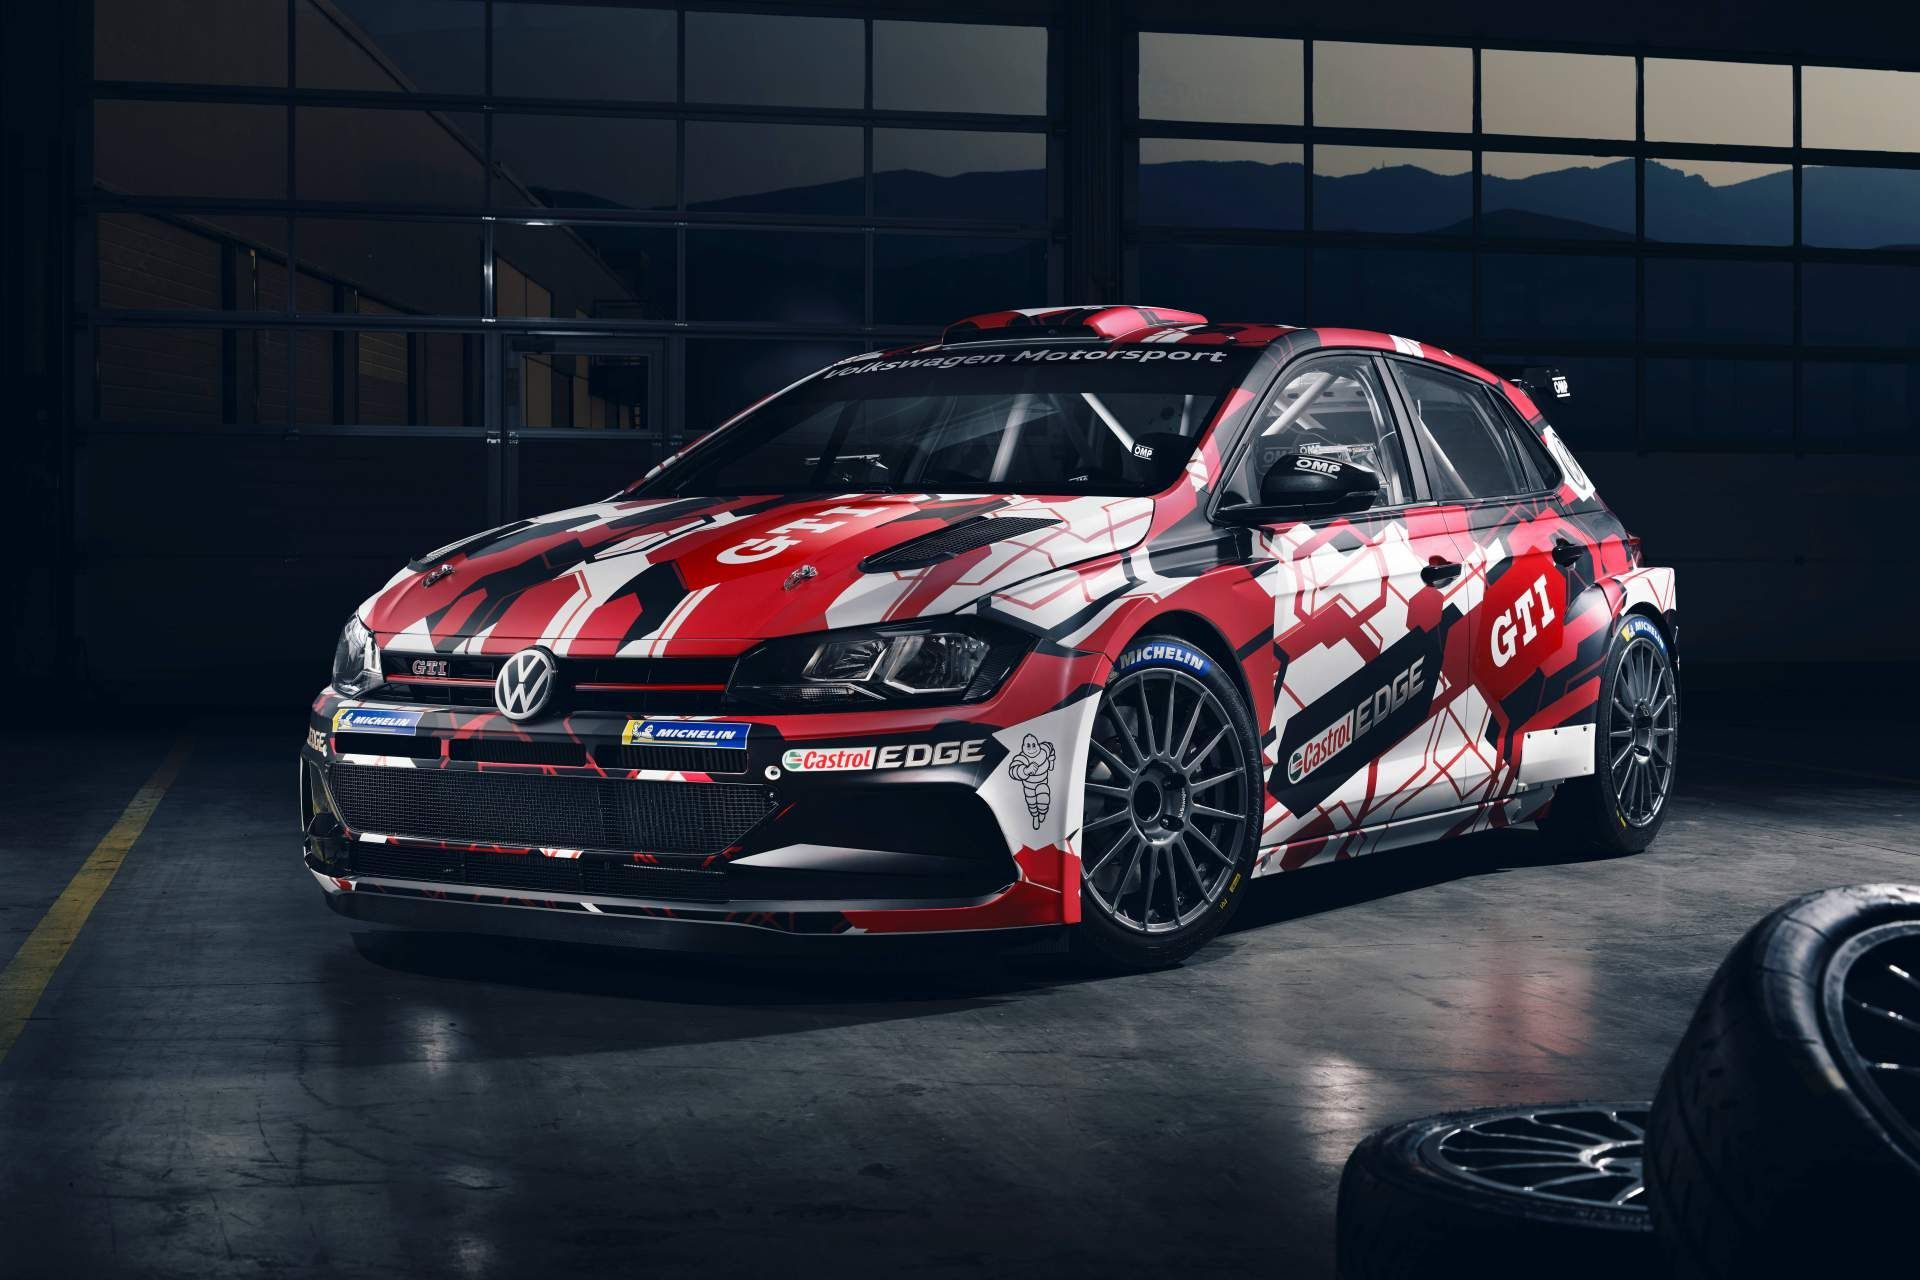 Vw Polo Gti R5 Looks Fast Standing Still Thanks To New Livery